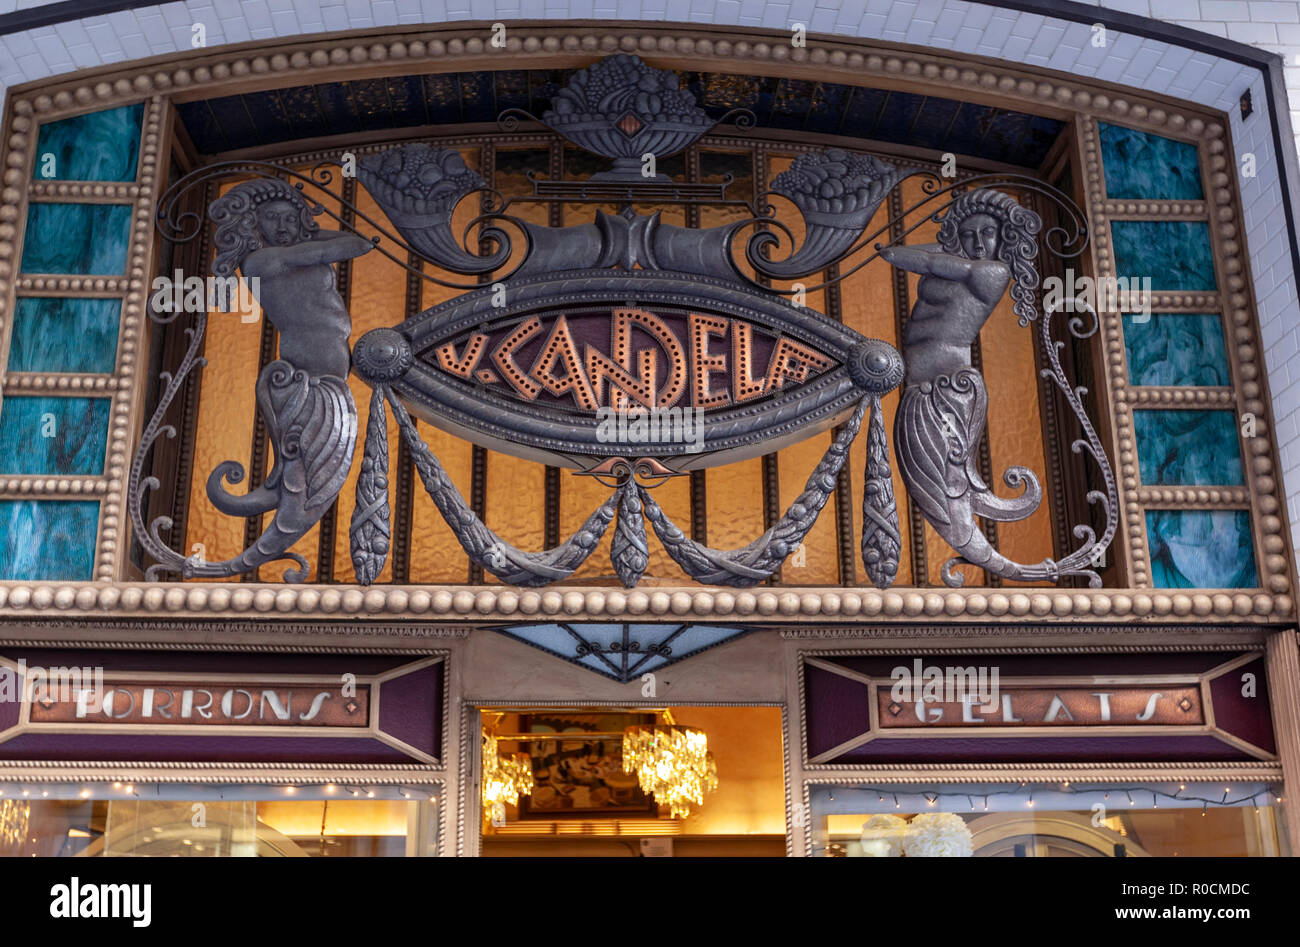 Candela ice cream and turron showcase shop in Argenteria, 8, the old town of Girona, Catalonia, Spain - Stock Image